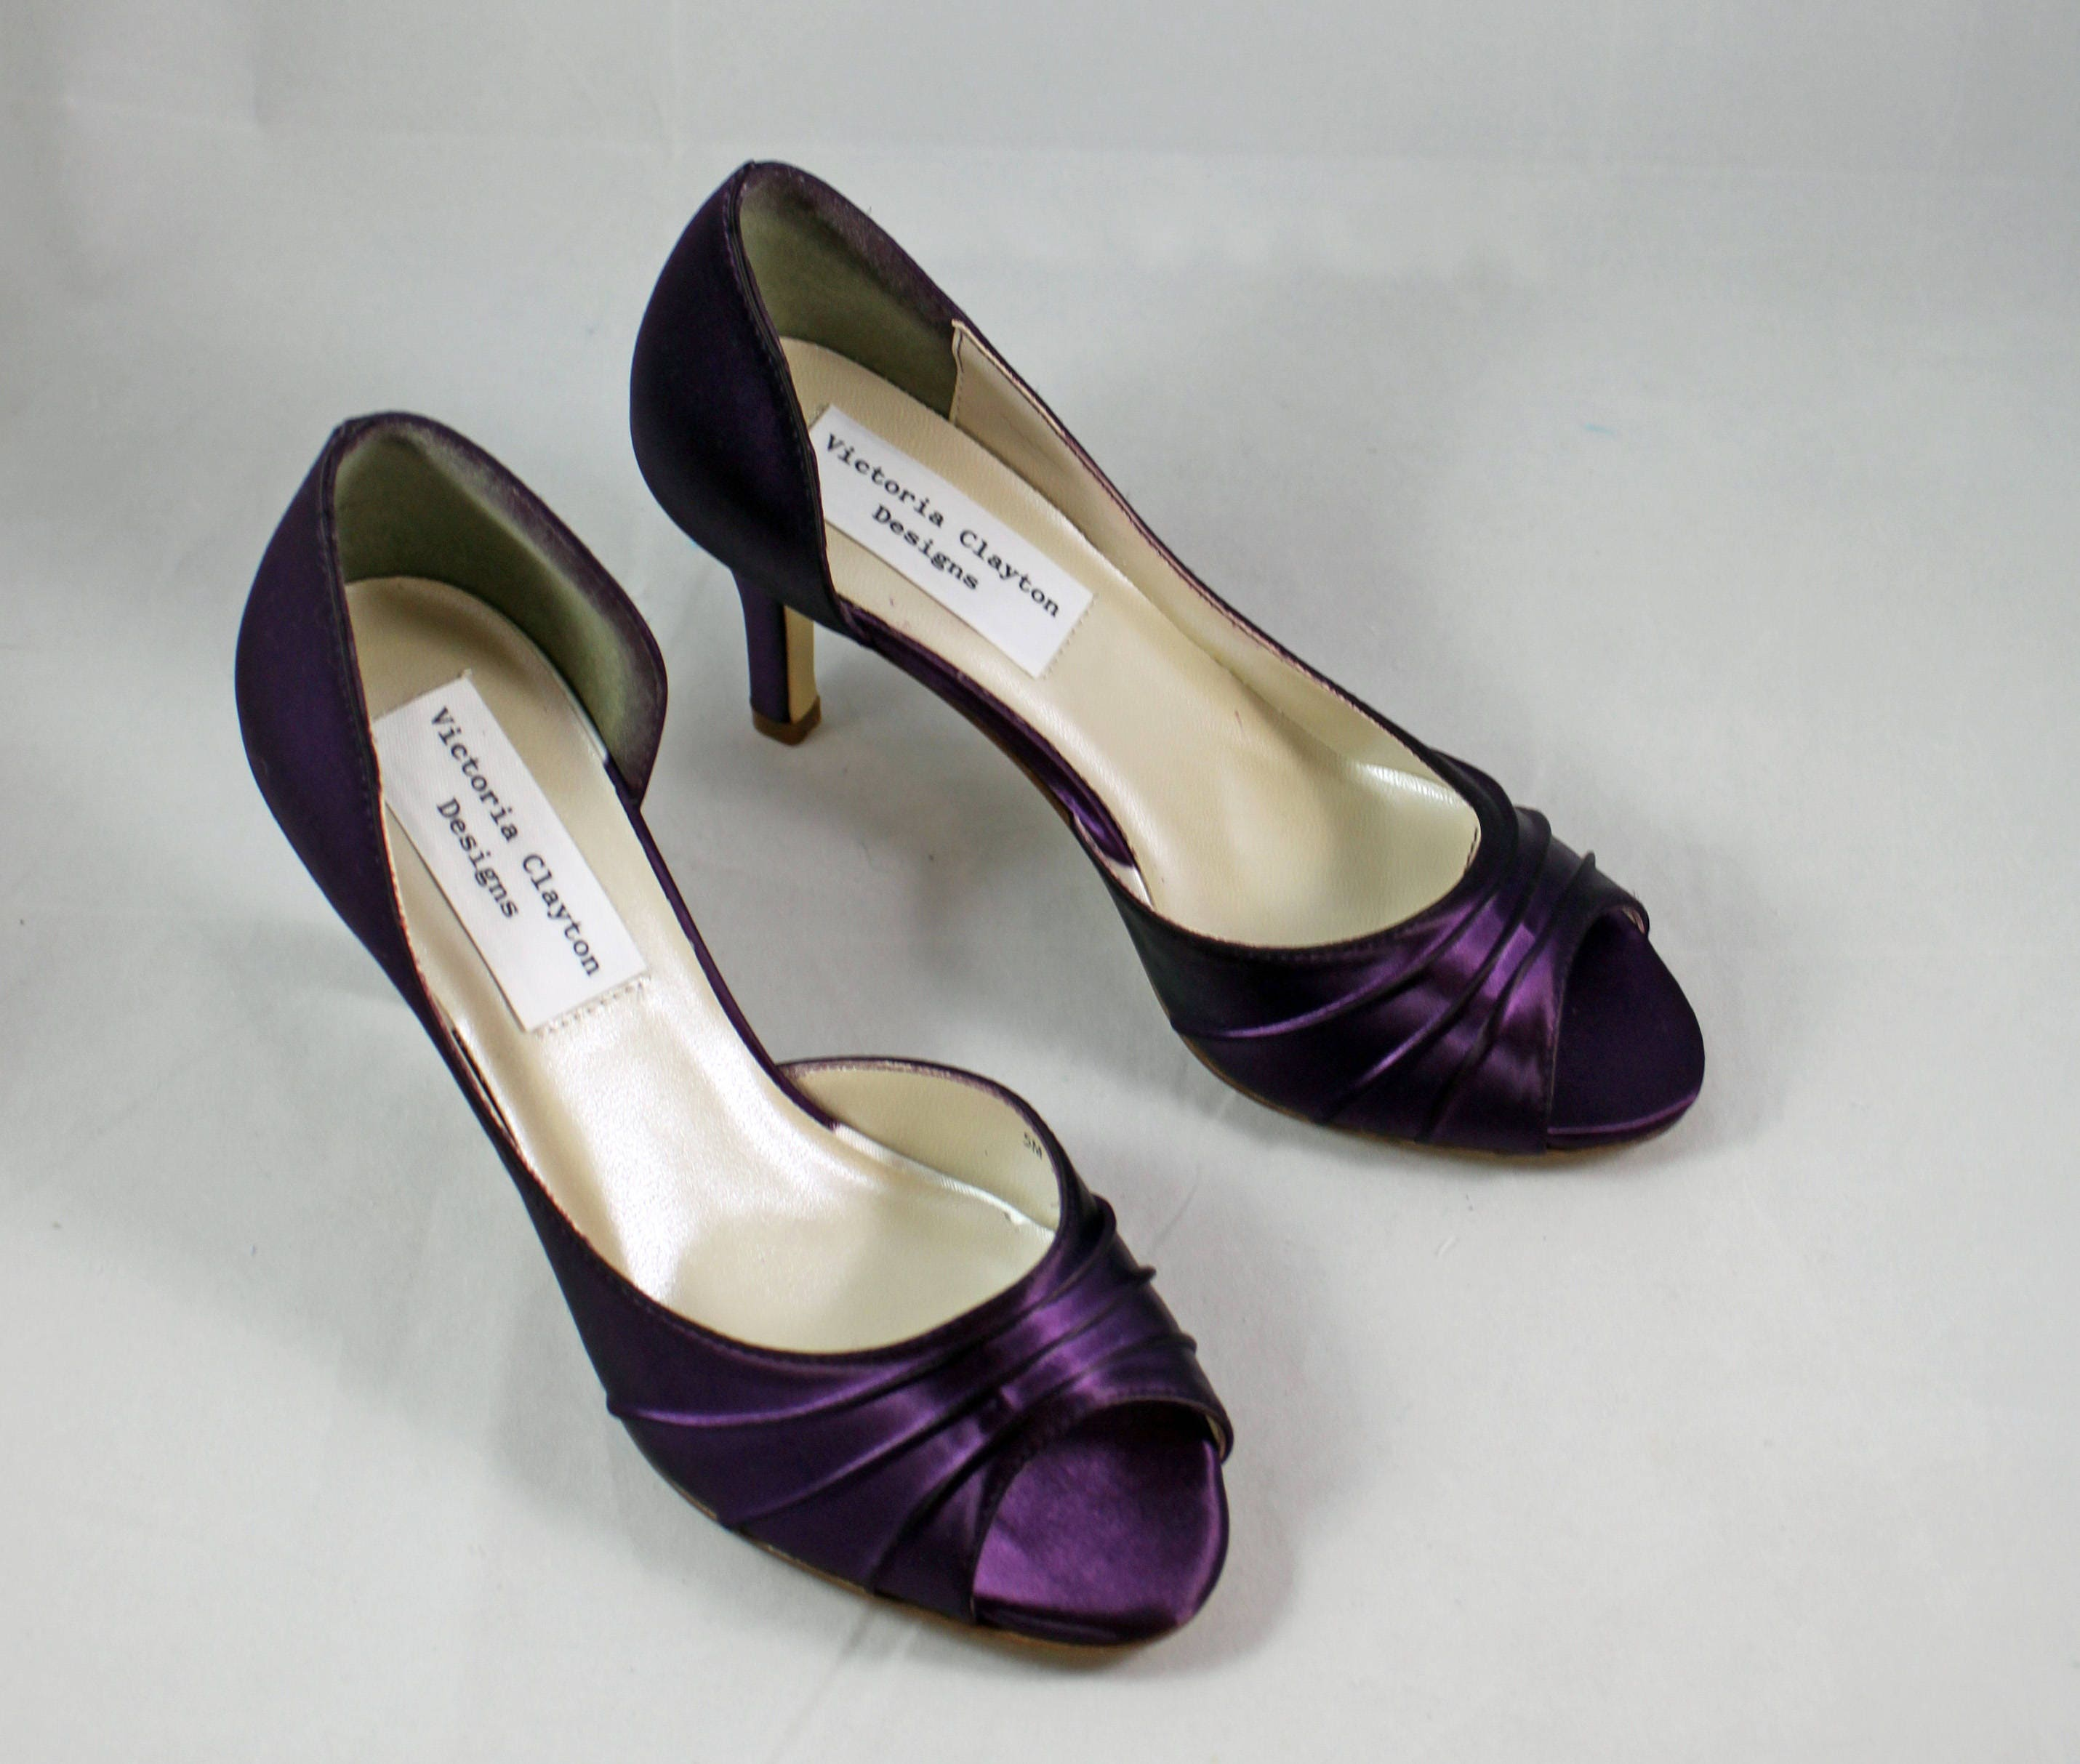 MOB Purple Wedding Shoes Low Heel SALE    2.5 Inch Heel   Aubergine Colored  Shoes Ready To Ship   Eggplant Shoe